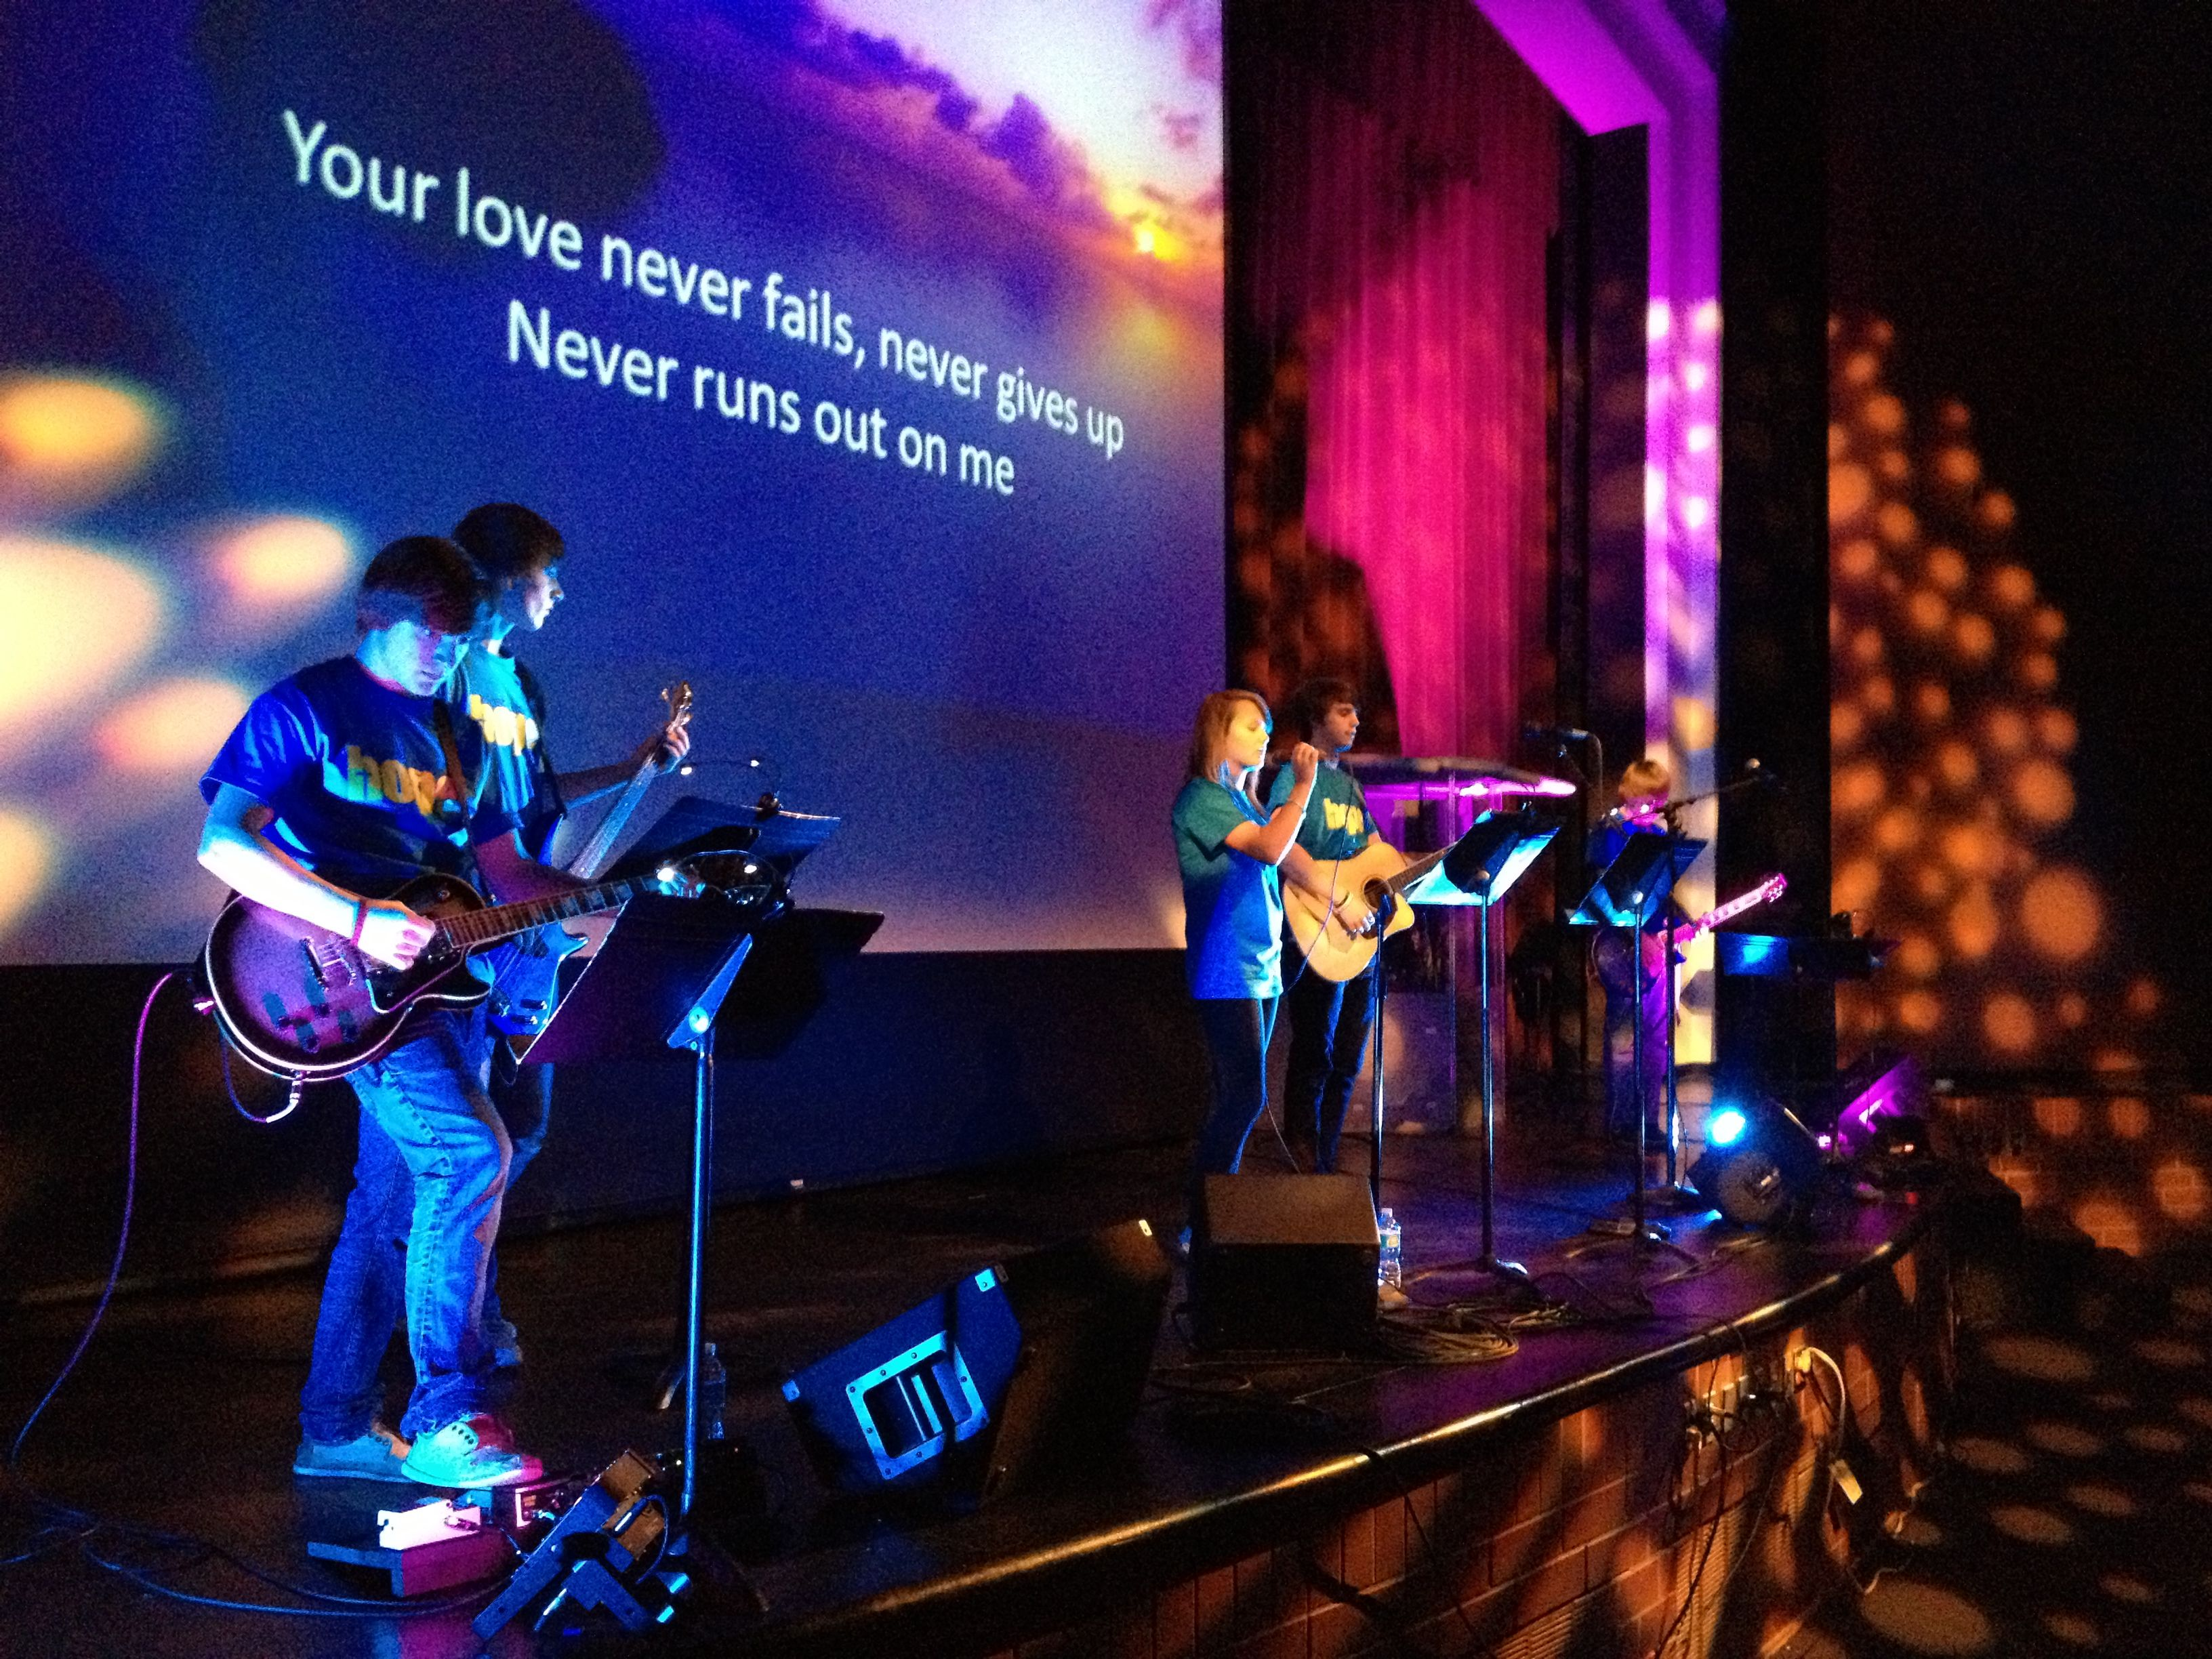 Overflow Band leading worship in Hastings MN at a city wide